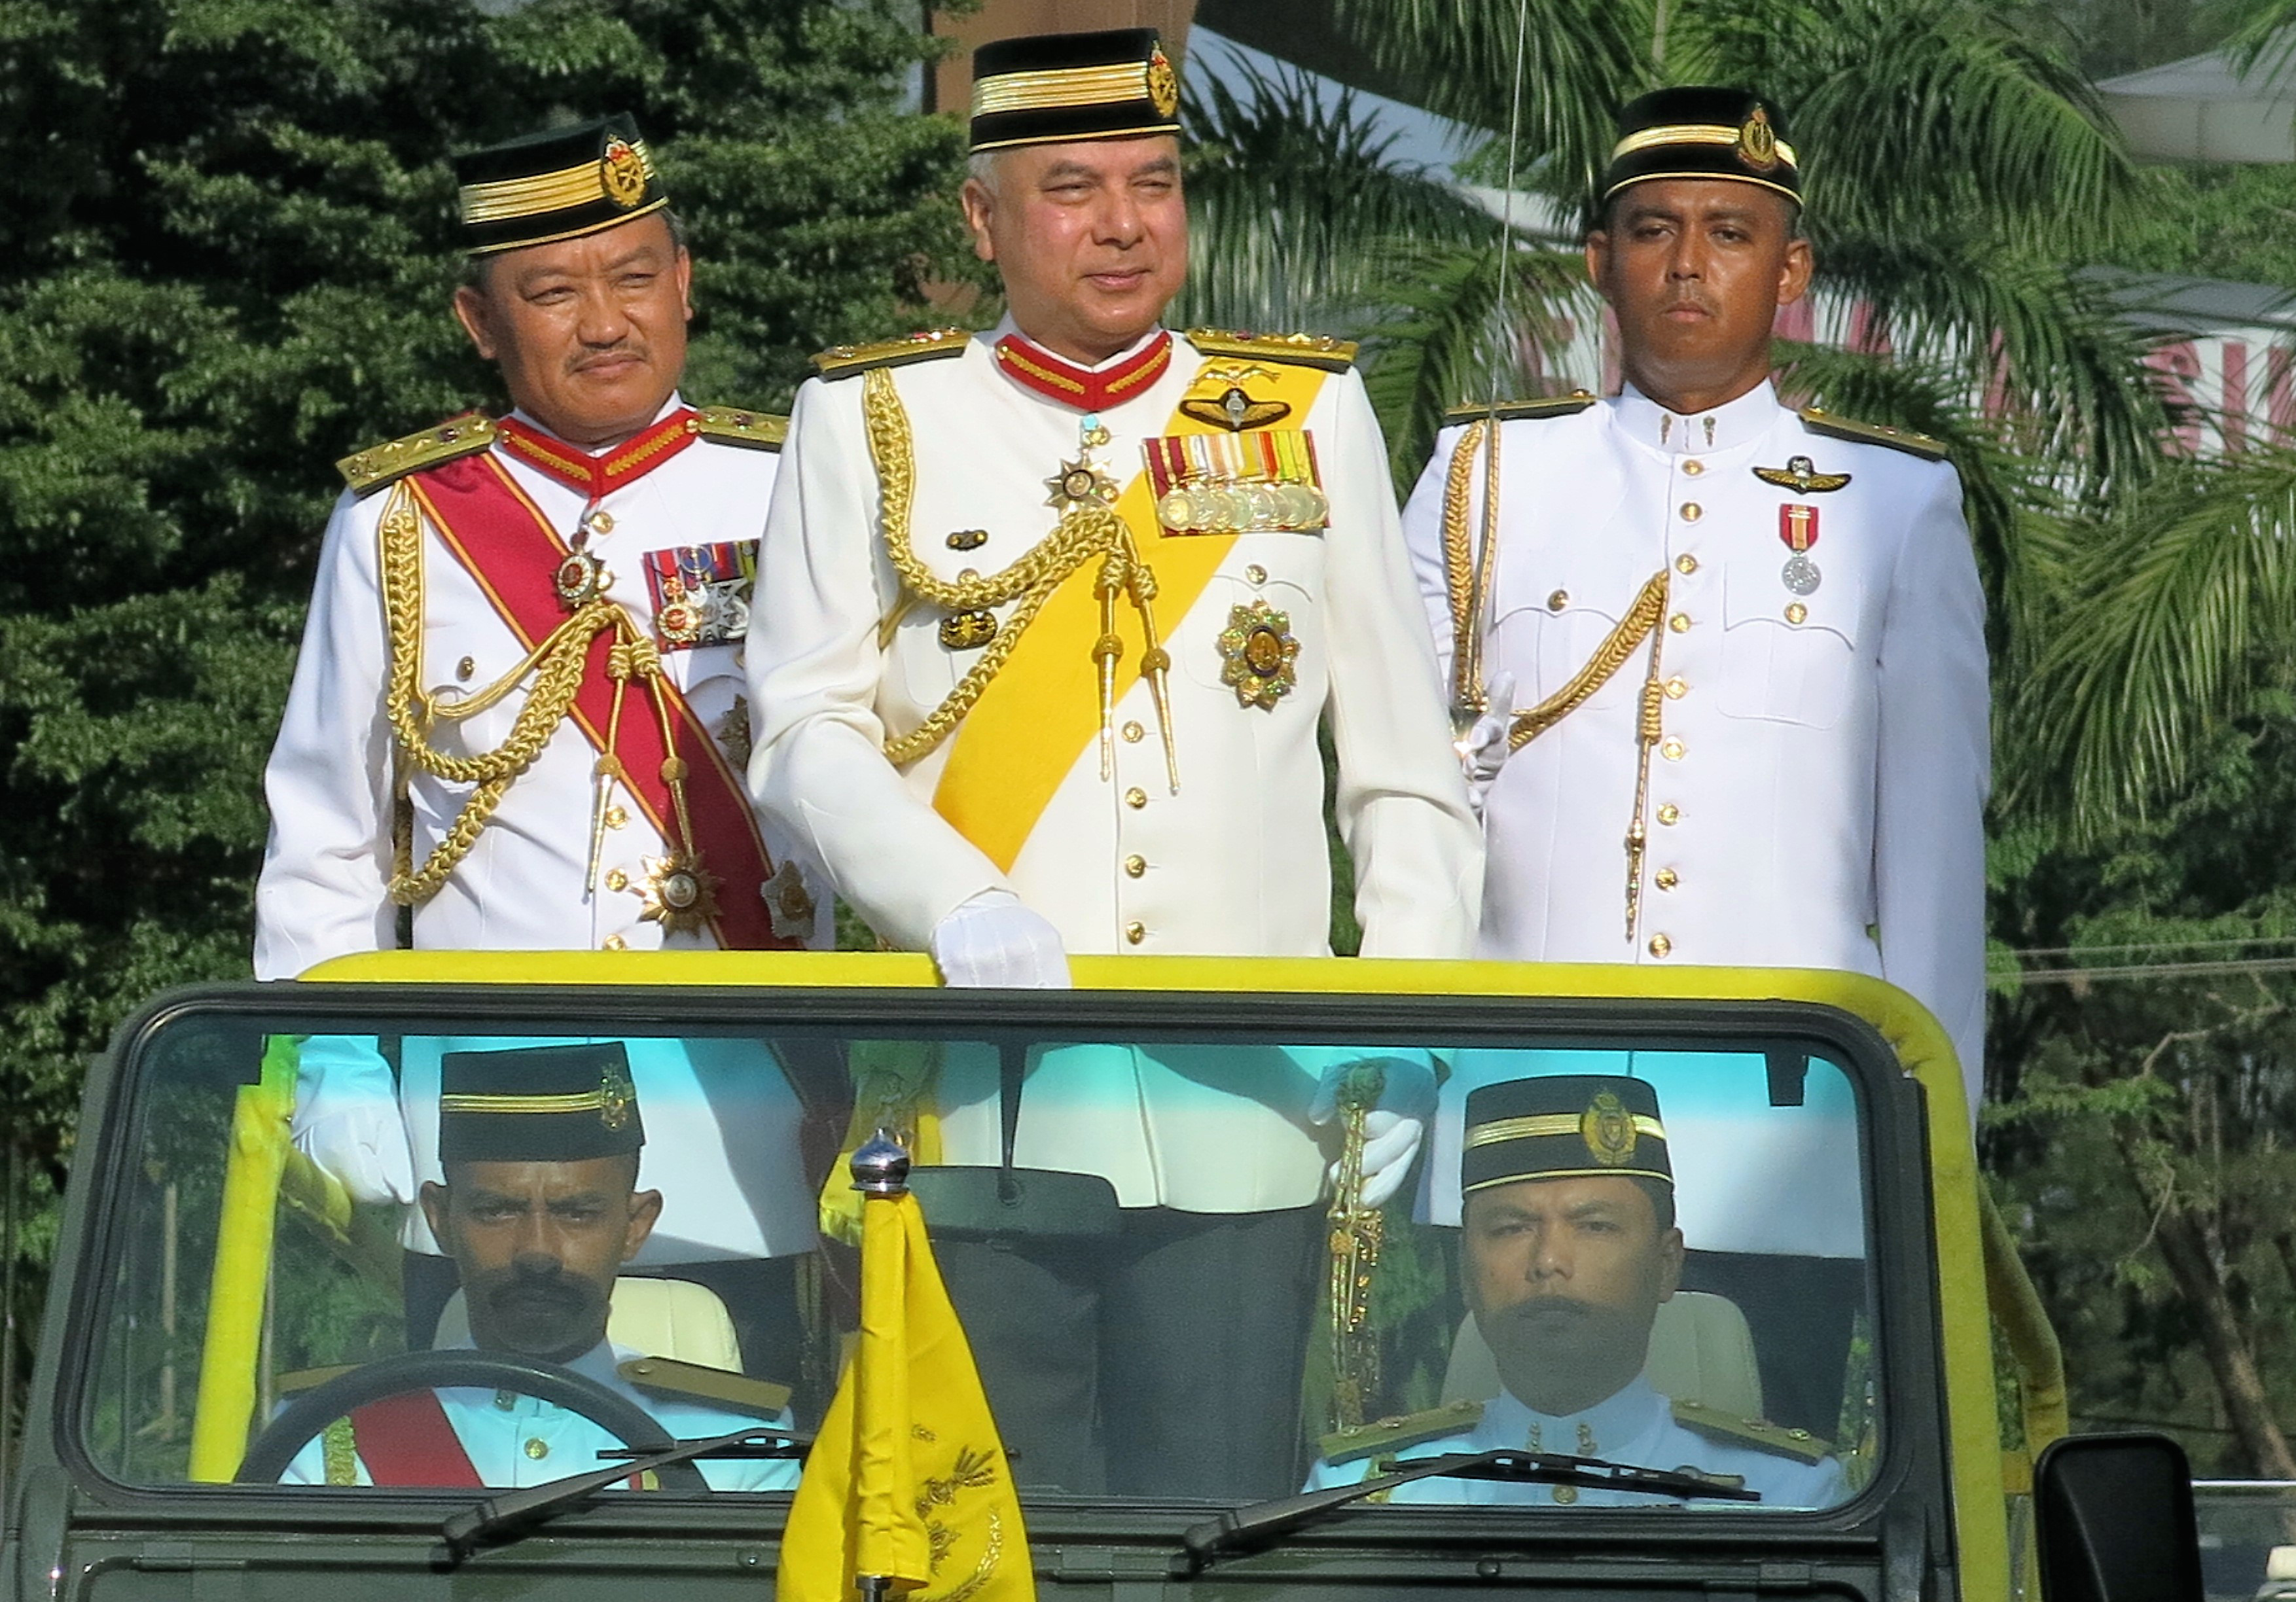 Sultan Nazrin inspecting the Guide of Honour Parade